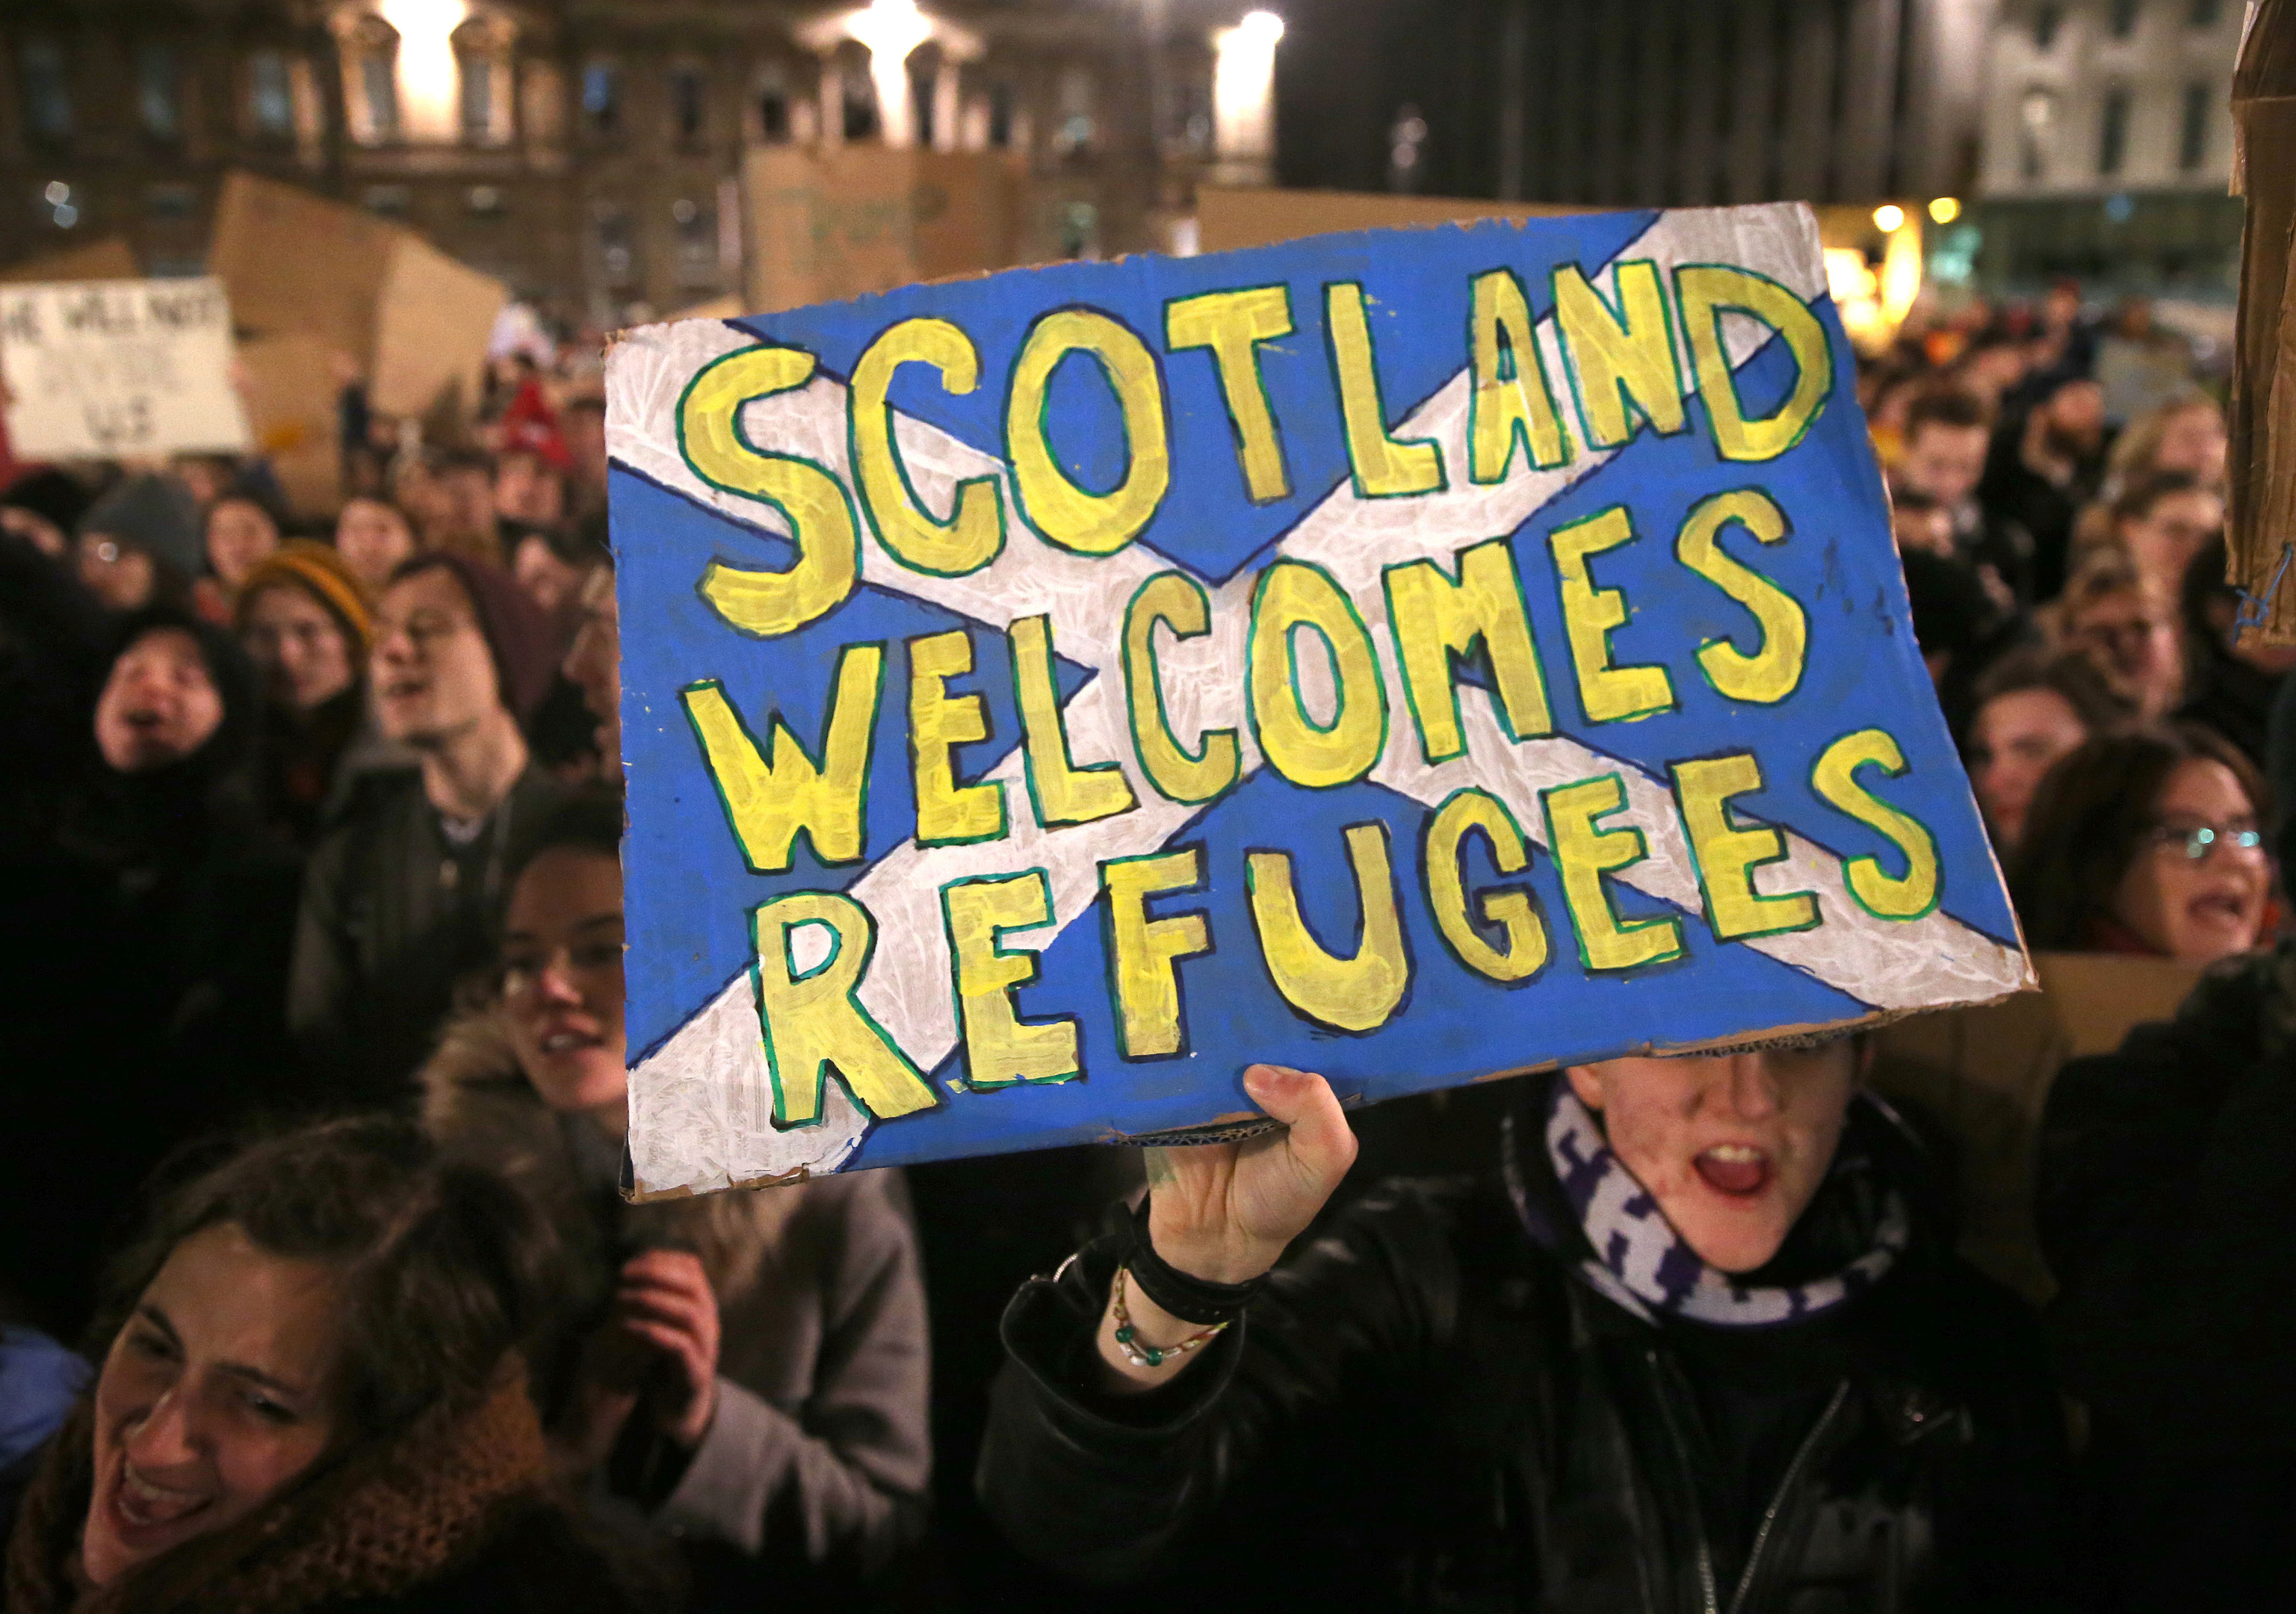 Demonstrators during a protest in Glasgow against US President Donald Trump's controversial travel ban on refugees and people from seven mainly-Muslim countries.